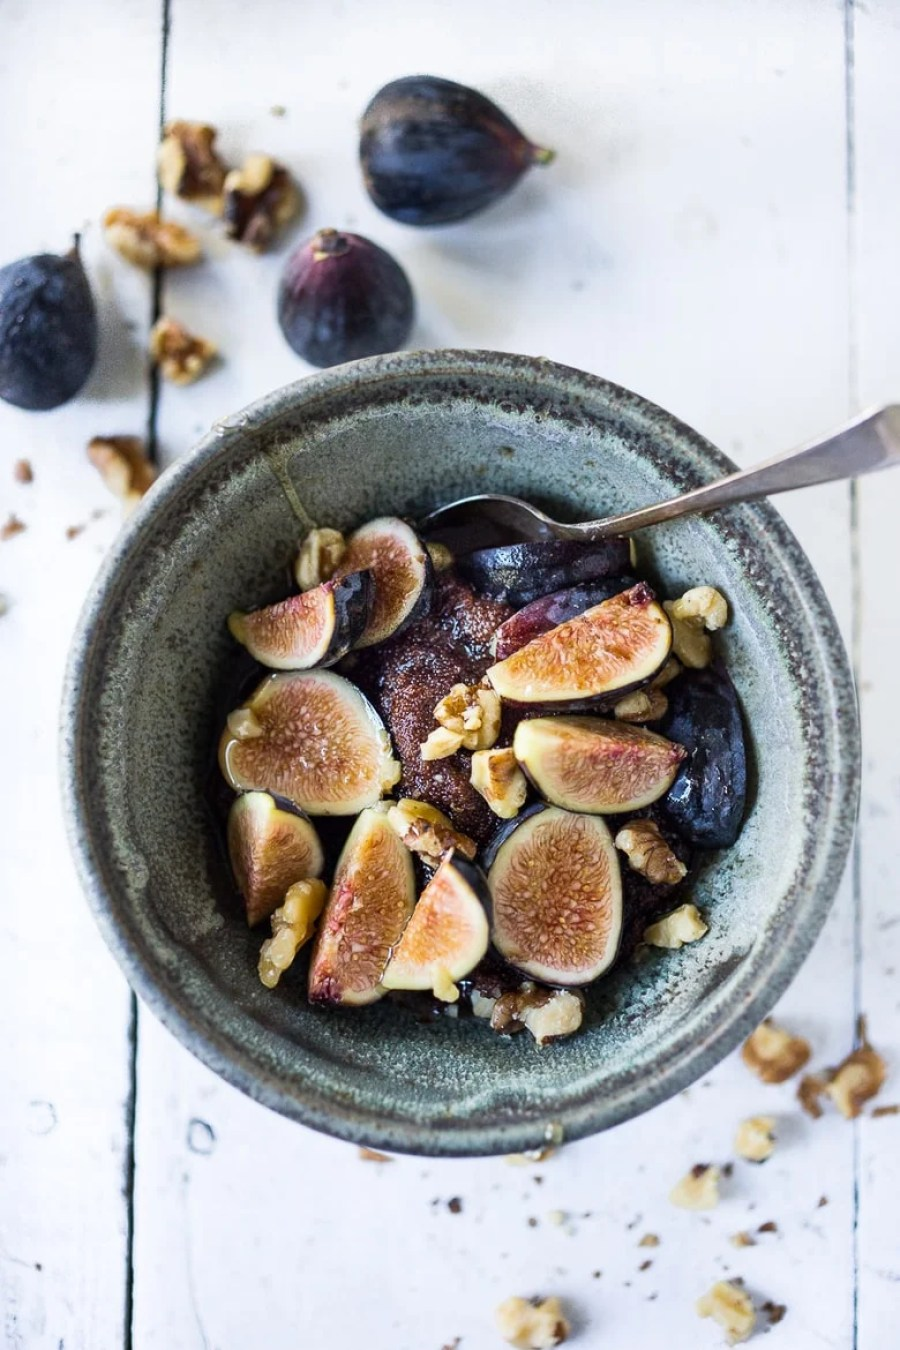 Teff Porridge with Figs, Walnuts and Honey